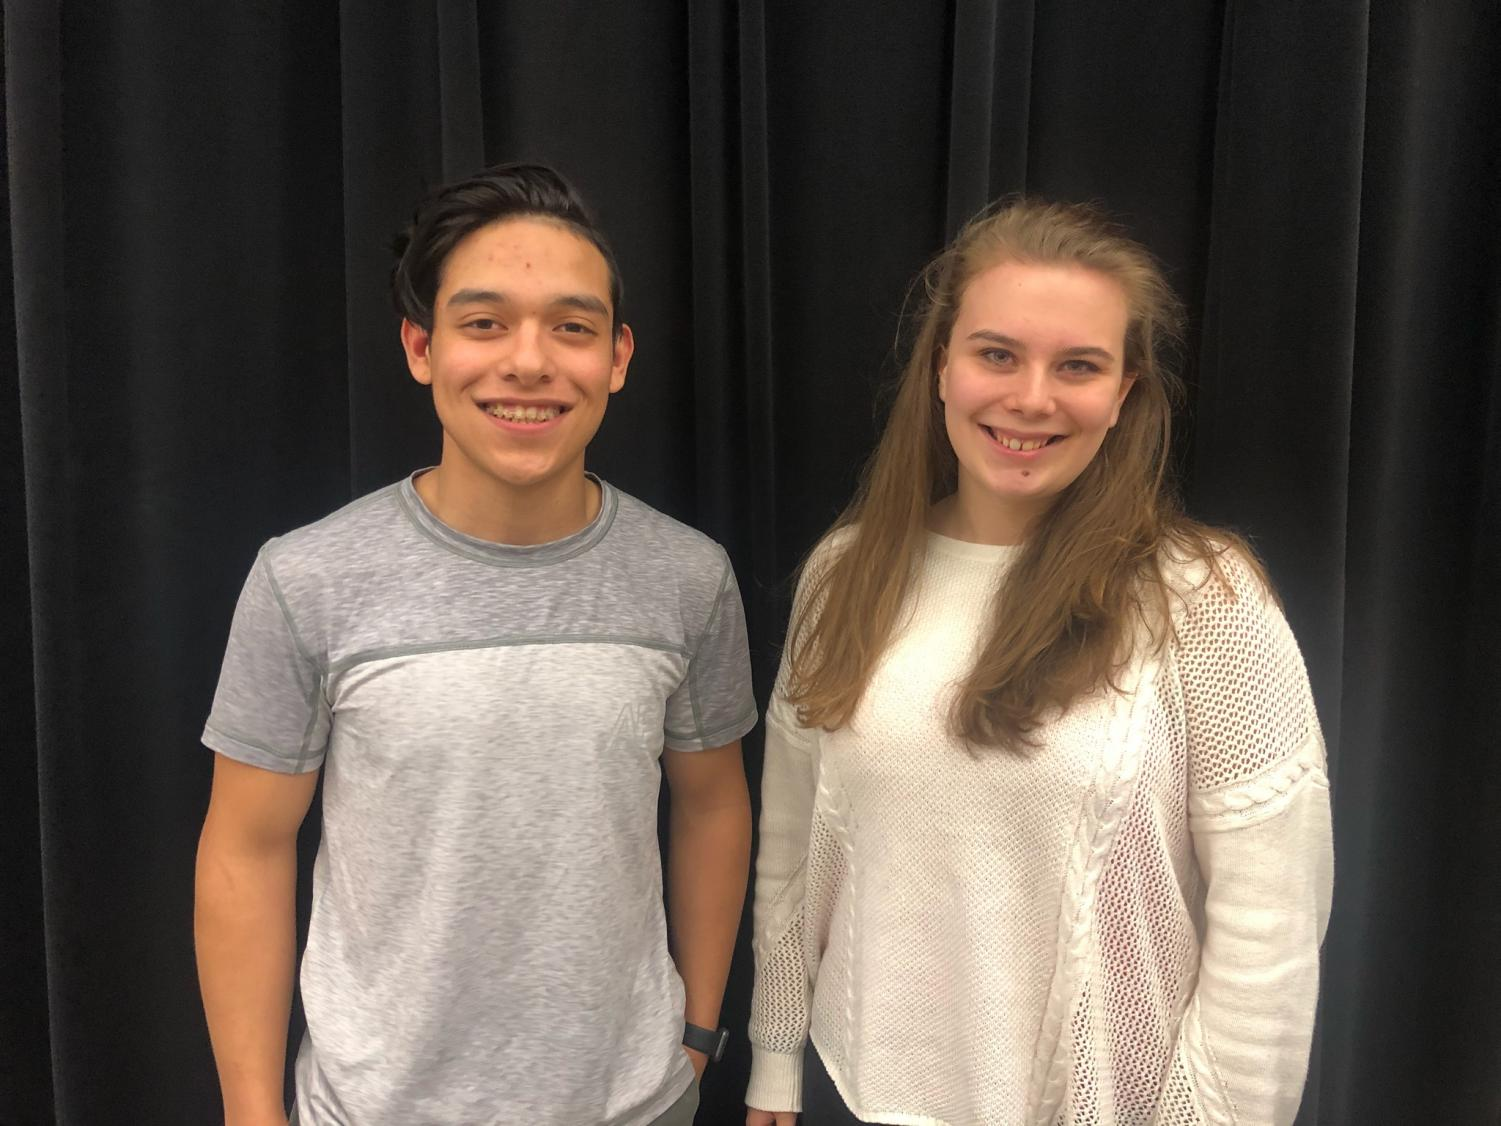 Villegas, Farrow Named As 2018-2019 Drum Majors